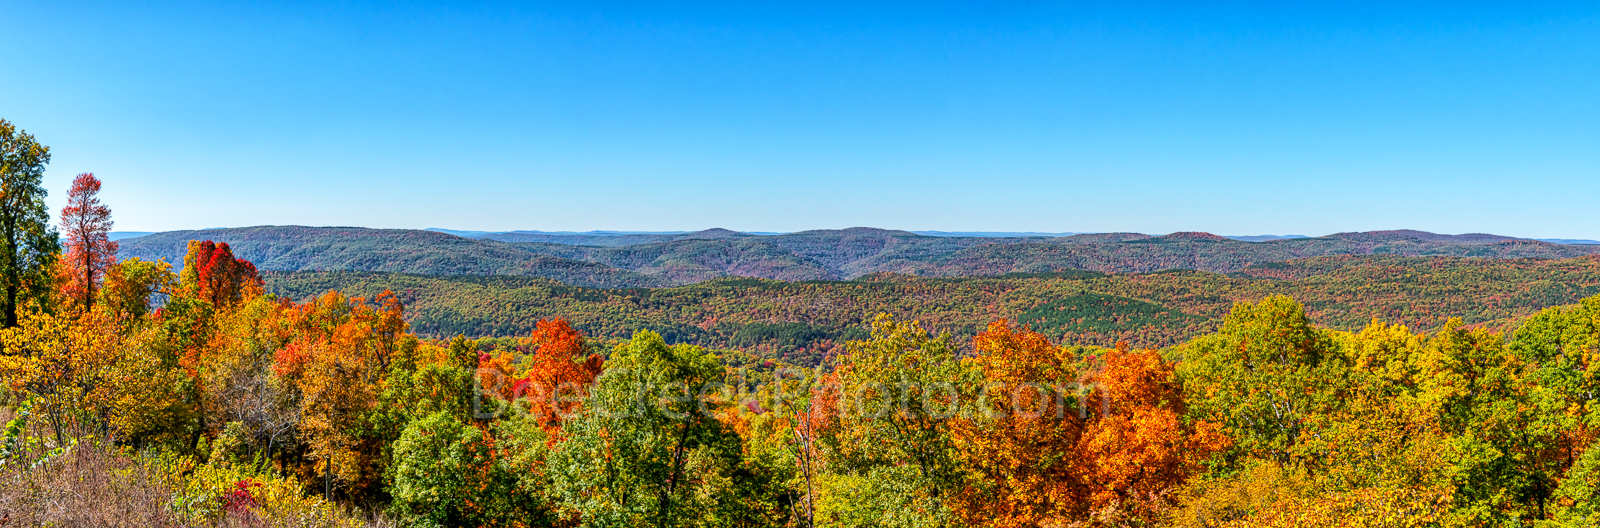 Ozarks in Fall Panorama - The mountain of the Ozarks were alive with color this year. It was so colorful here with all the trees...